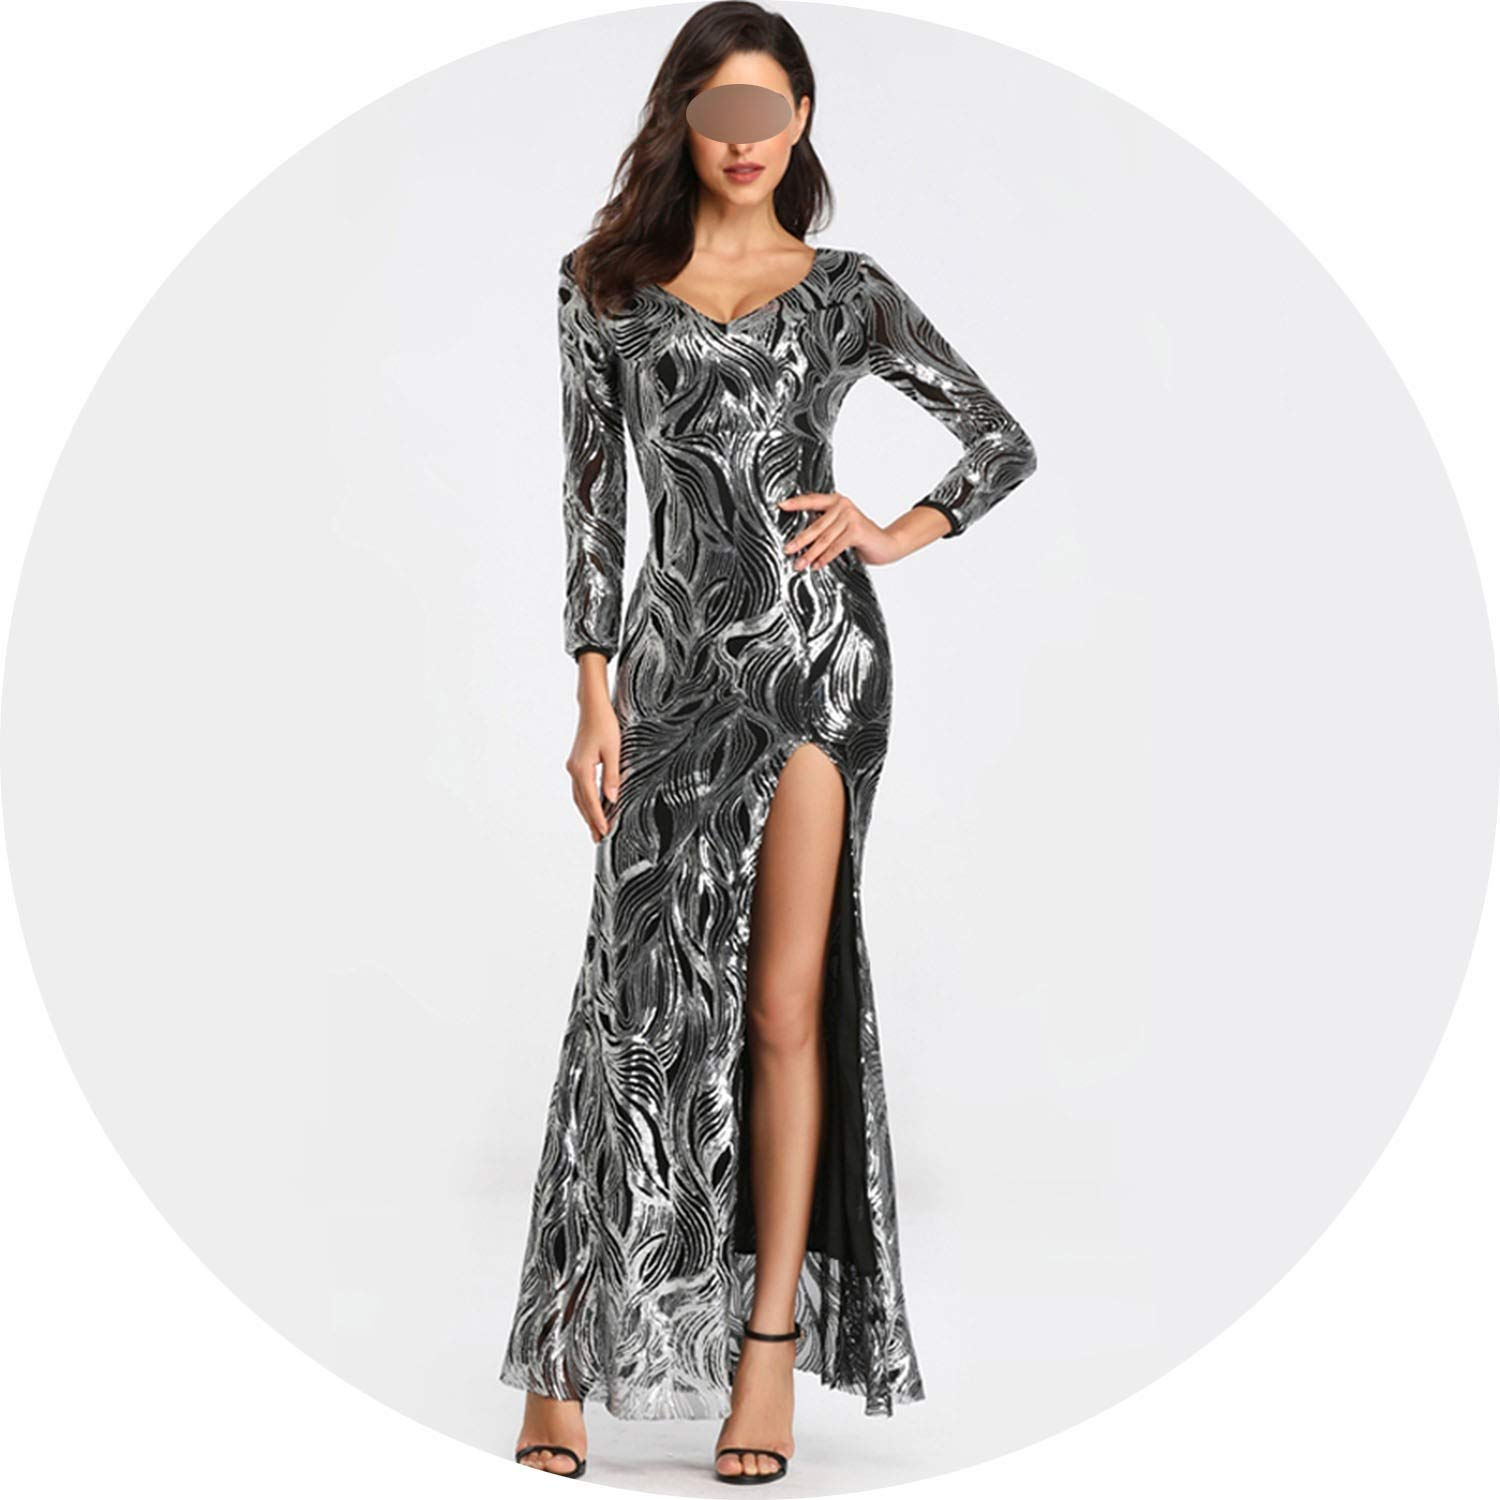 Black Silver Sexy Evening Dress Womens V Neck Slit Long Sleeve Sequins Evening Party Dress